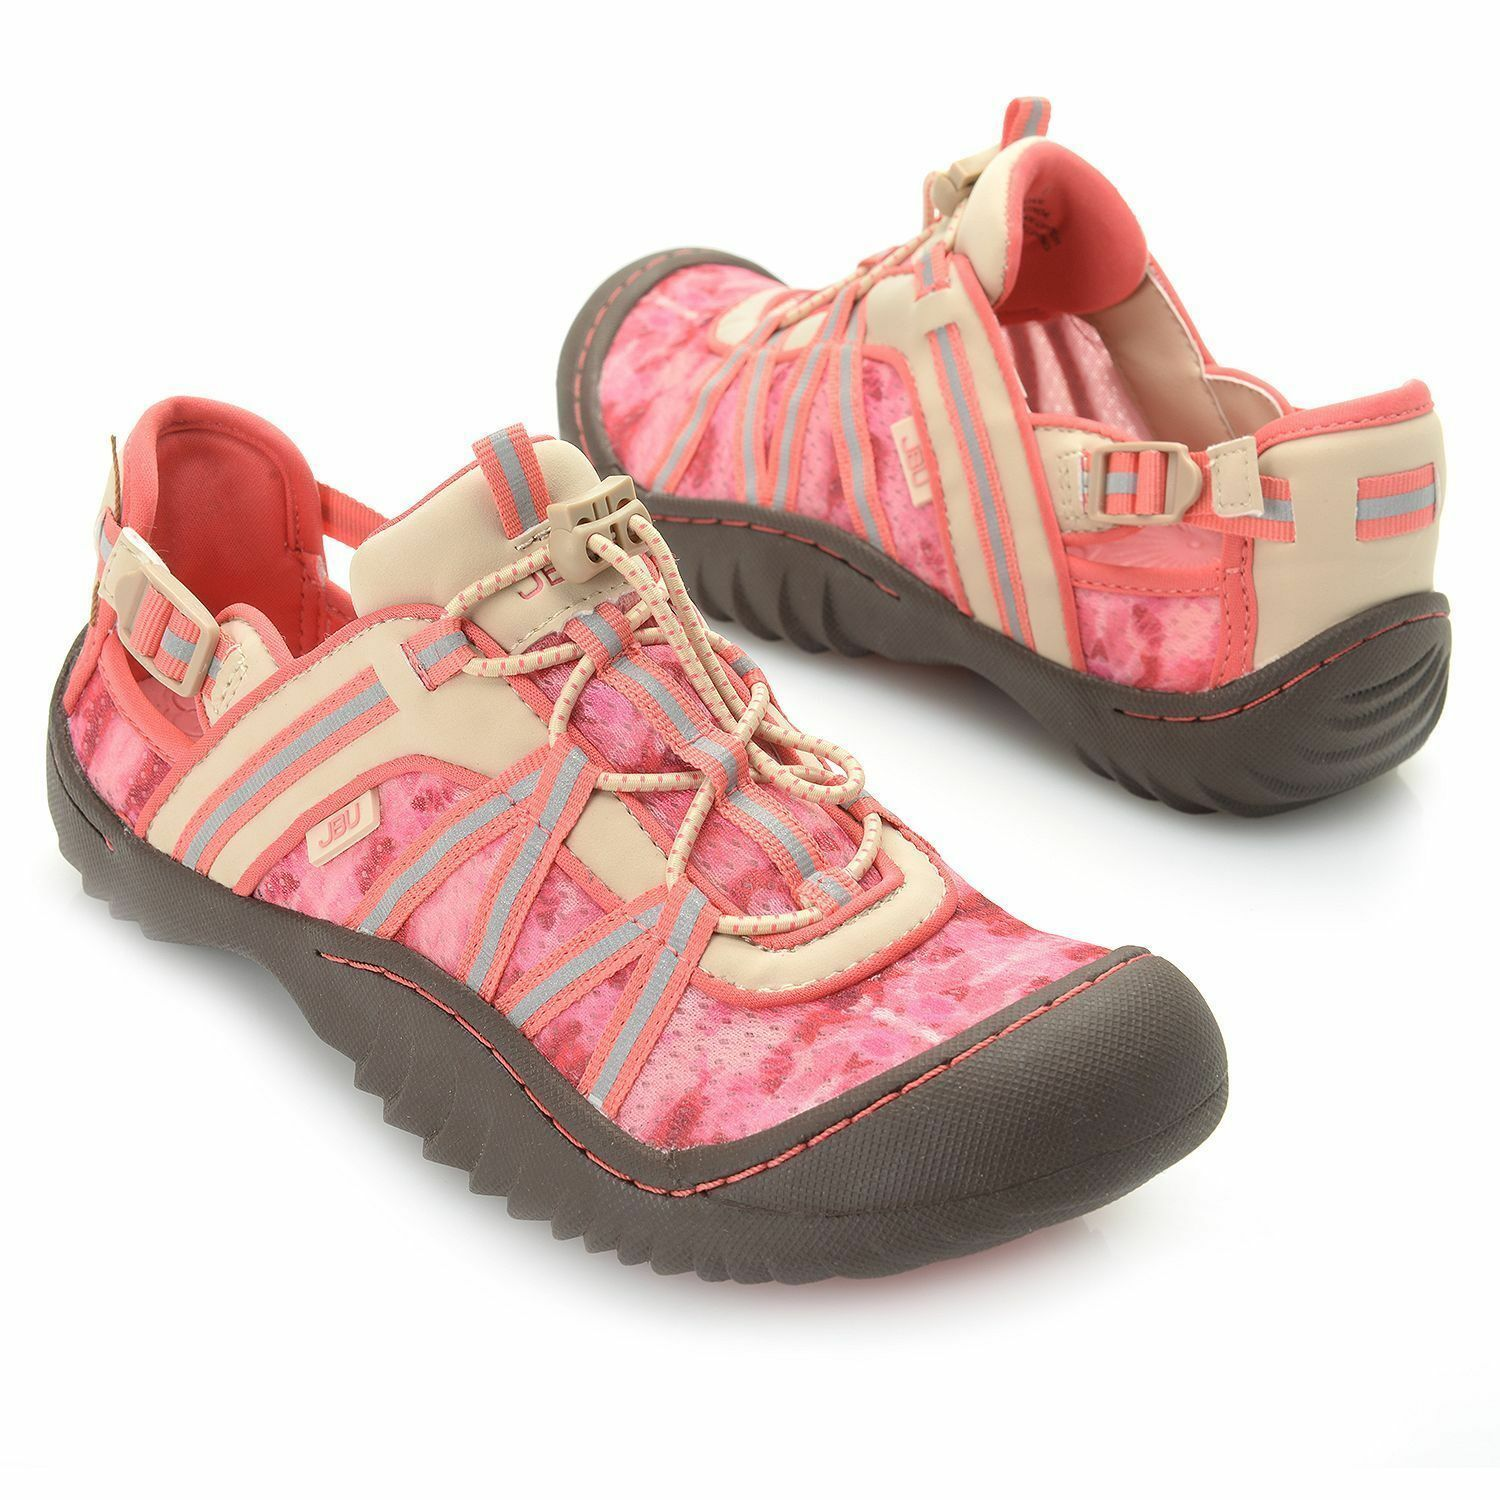 JBU by Jambu  KEEGAN   Bungee Lace chaussures TAN ROSE